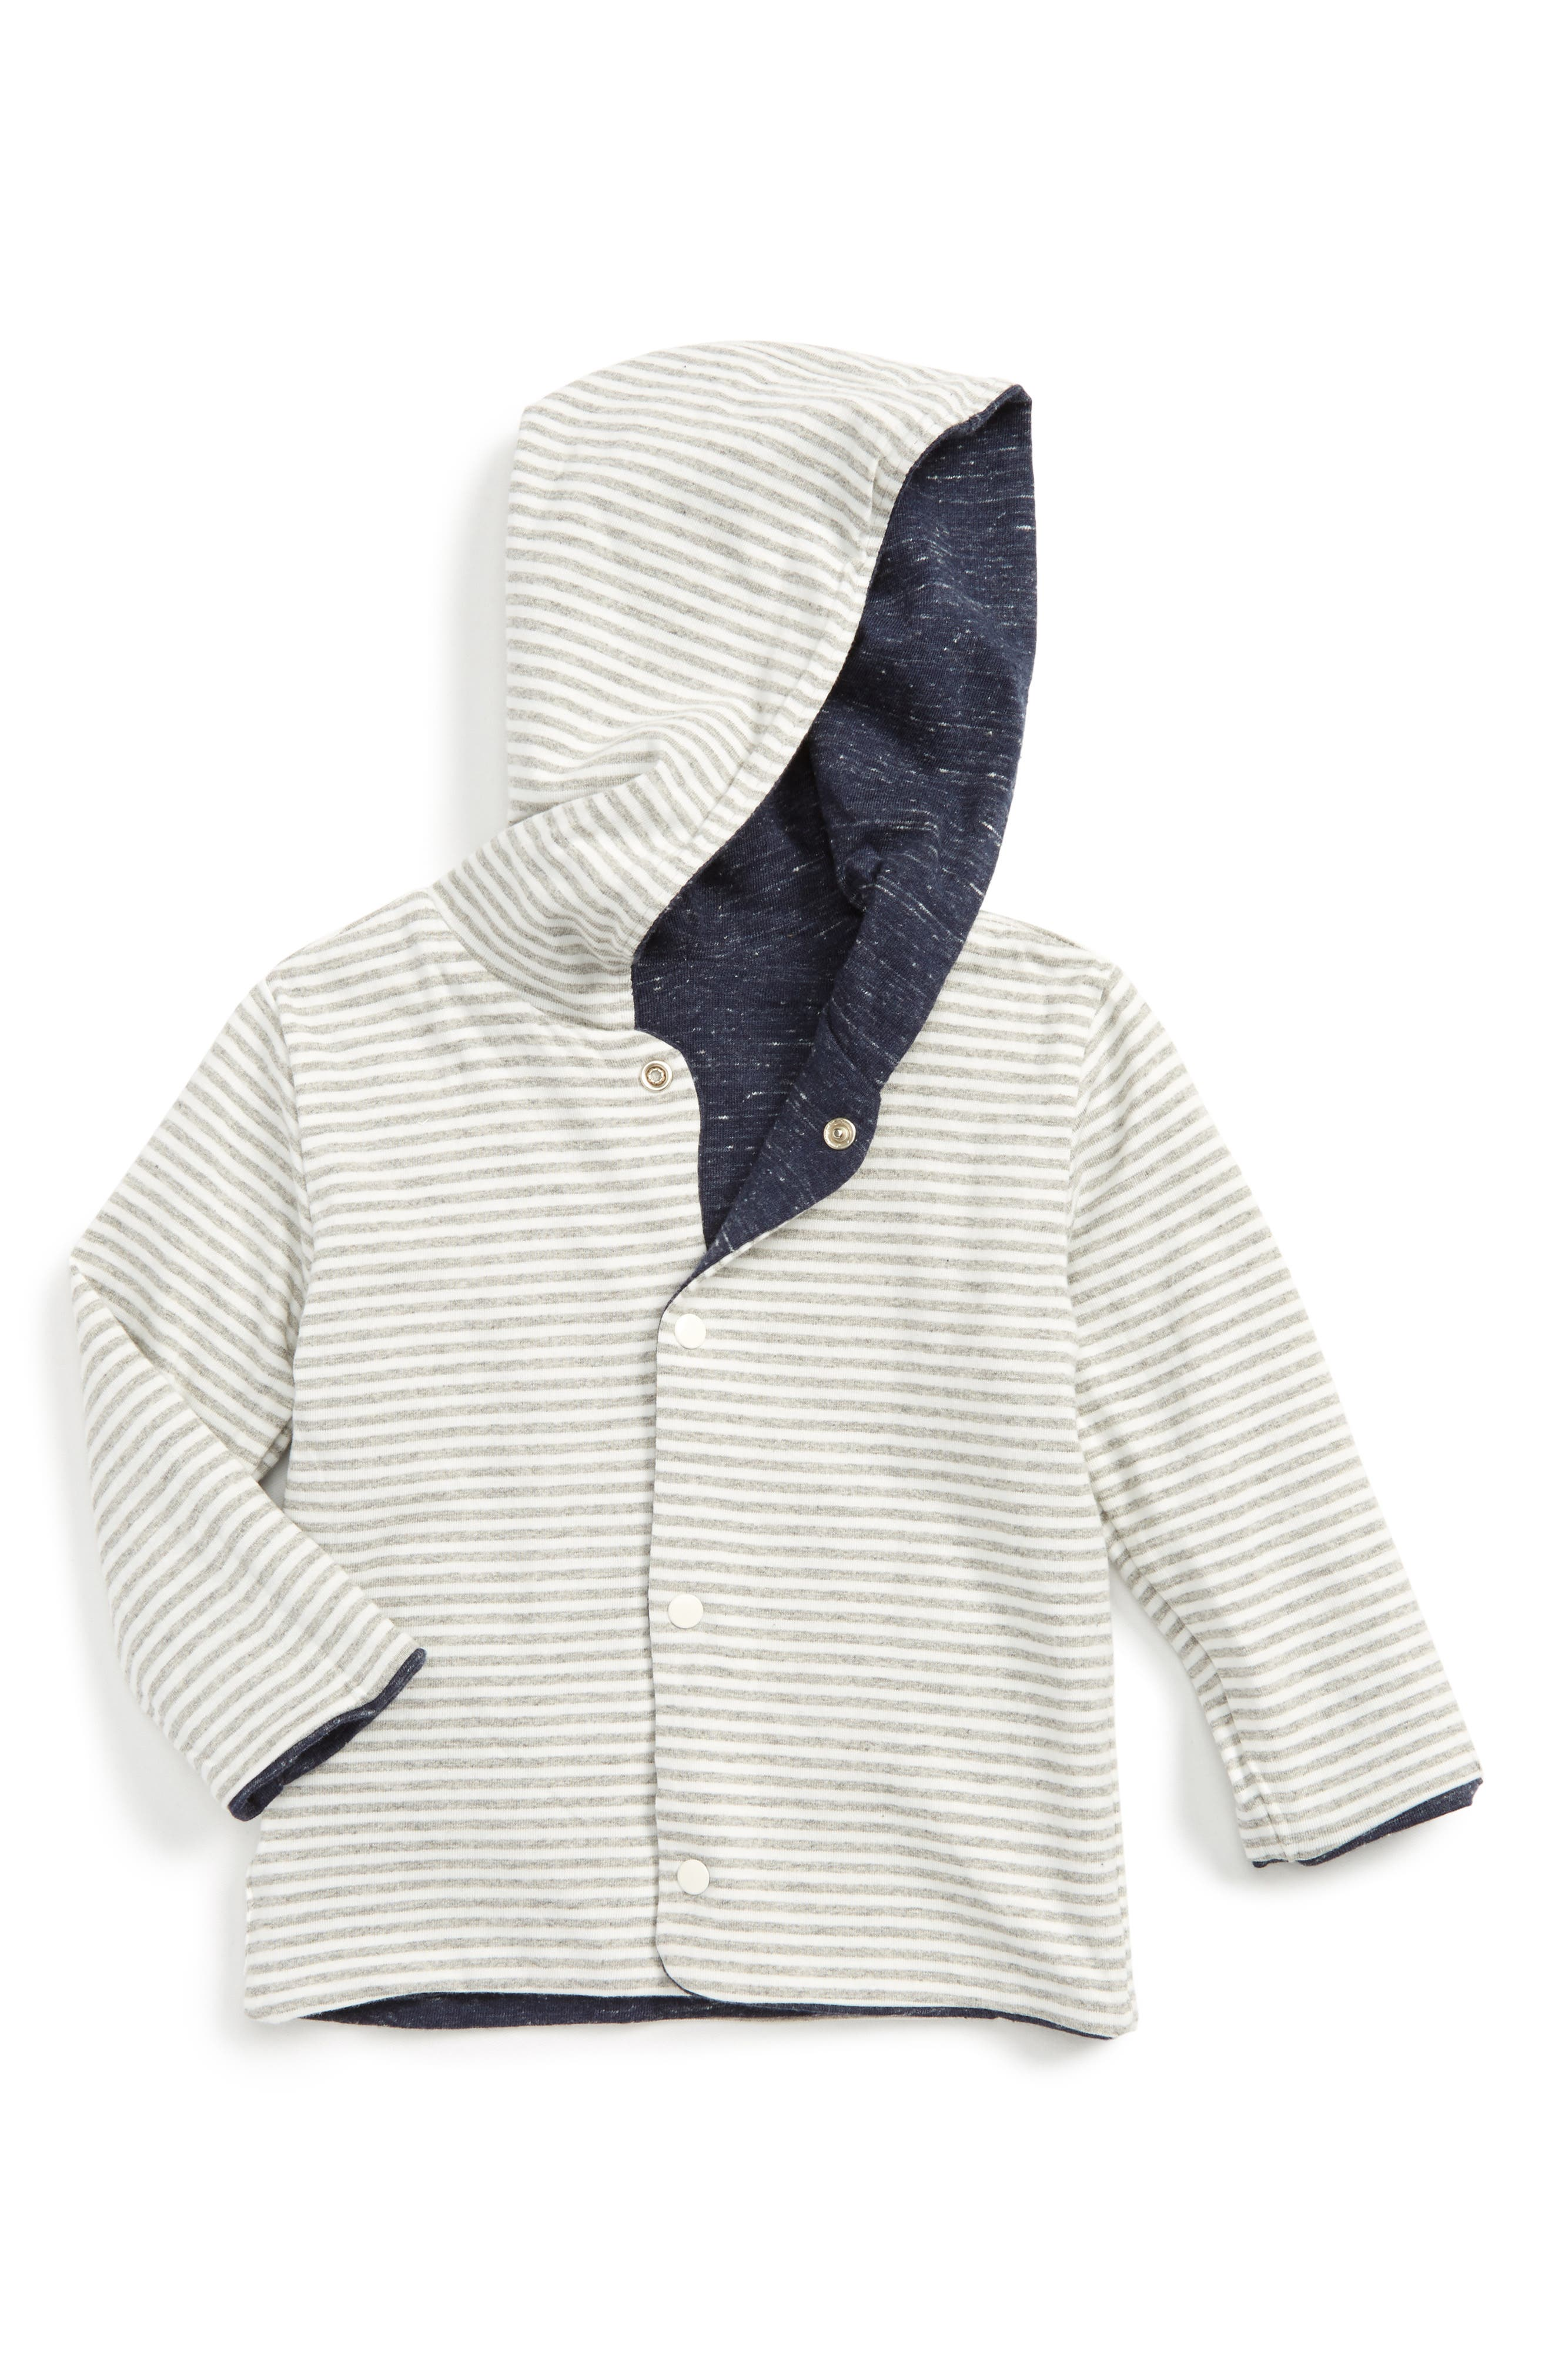 Alternate Image 2  - Hatley Reversible Hoodie (Baby Boys)